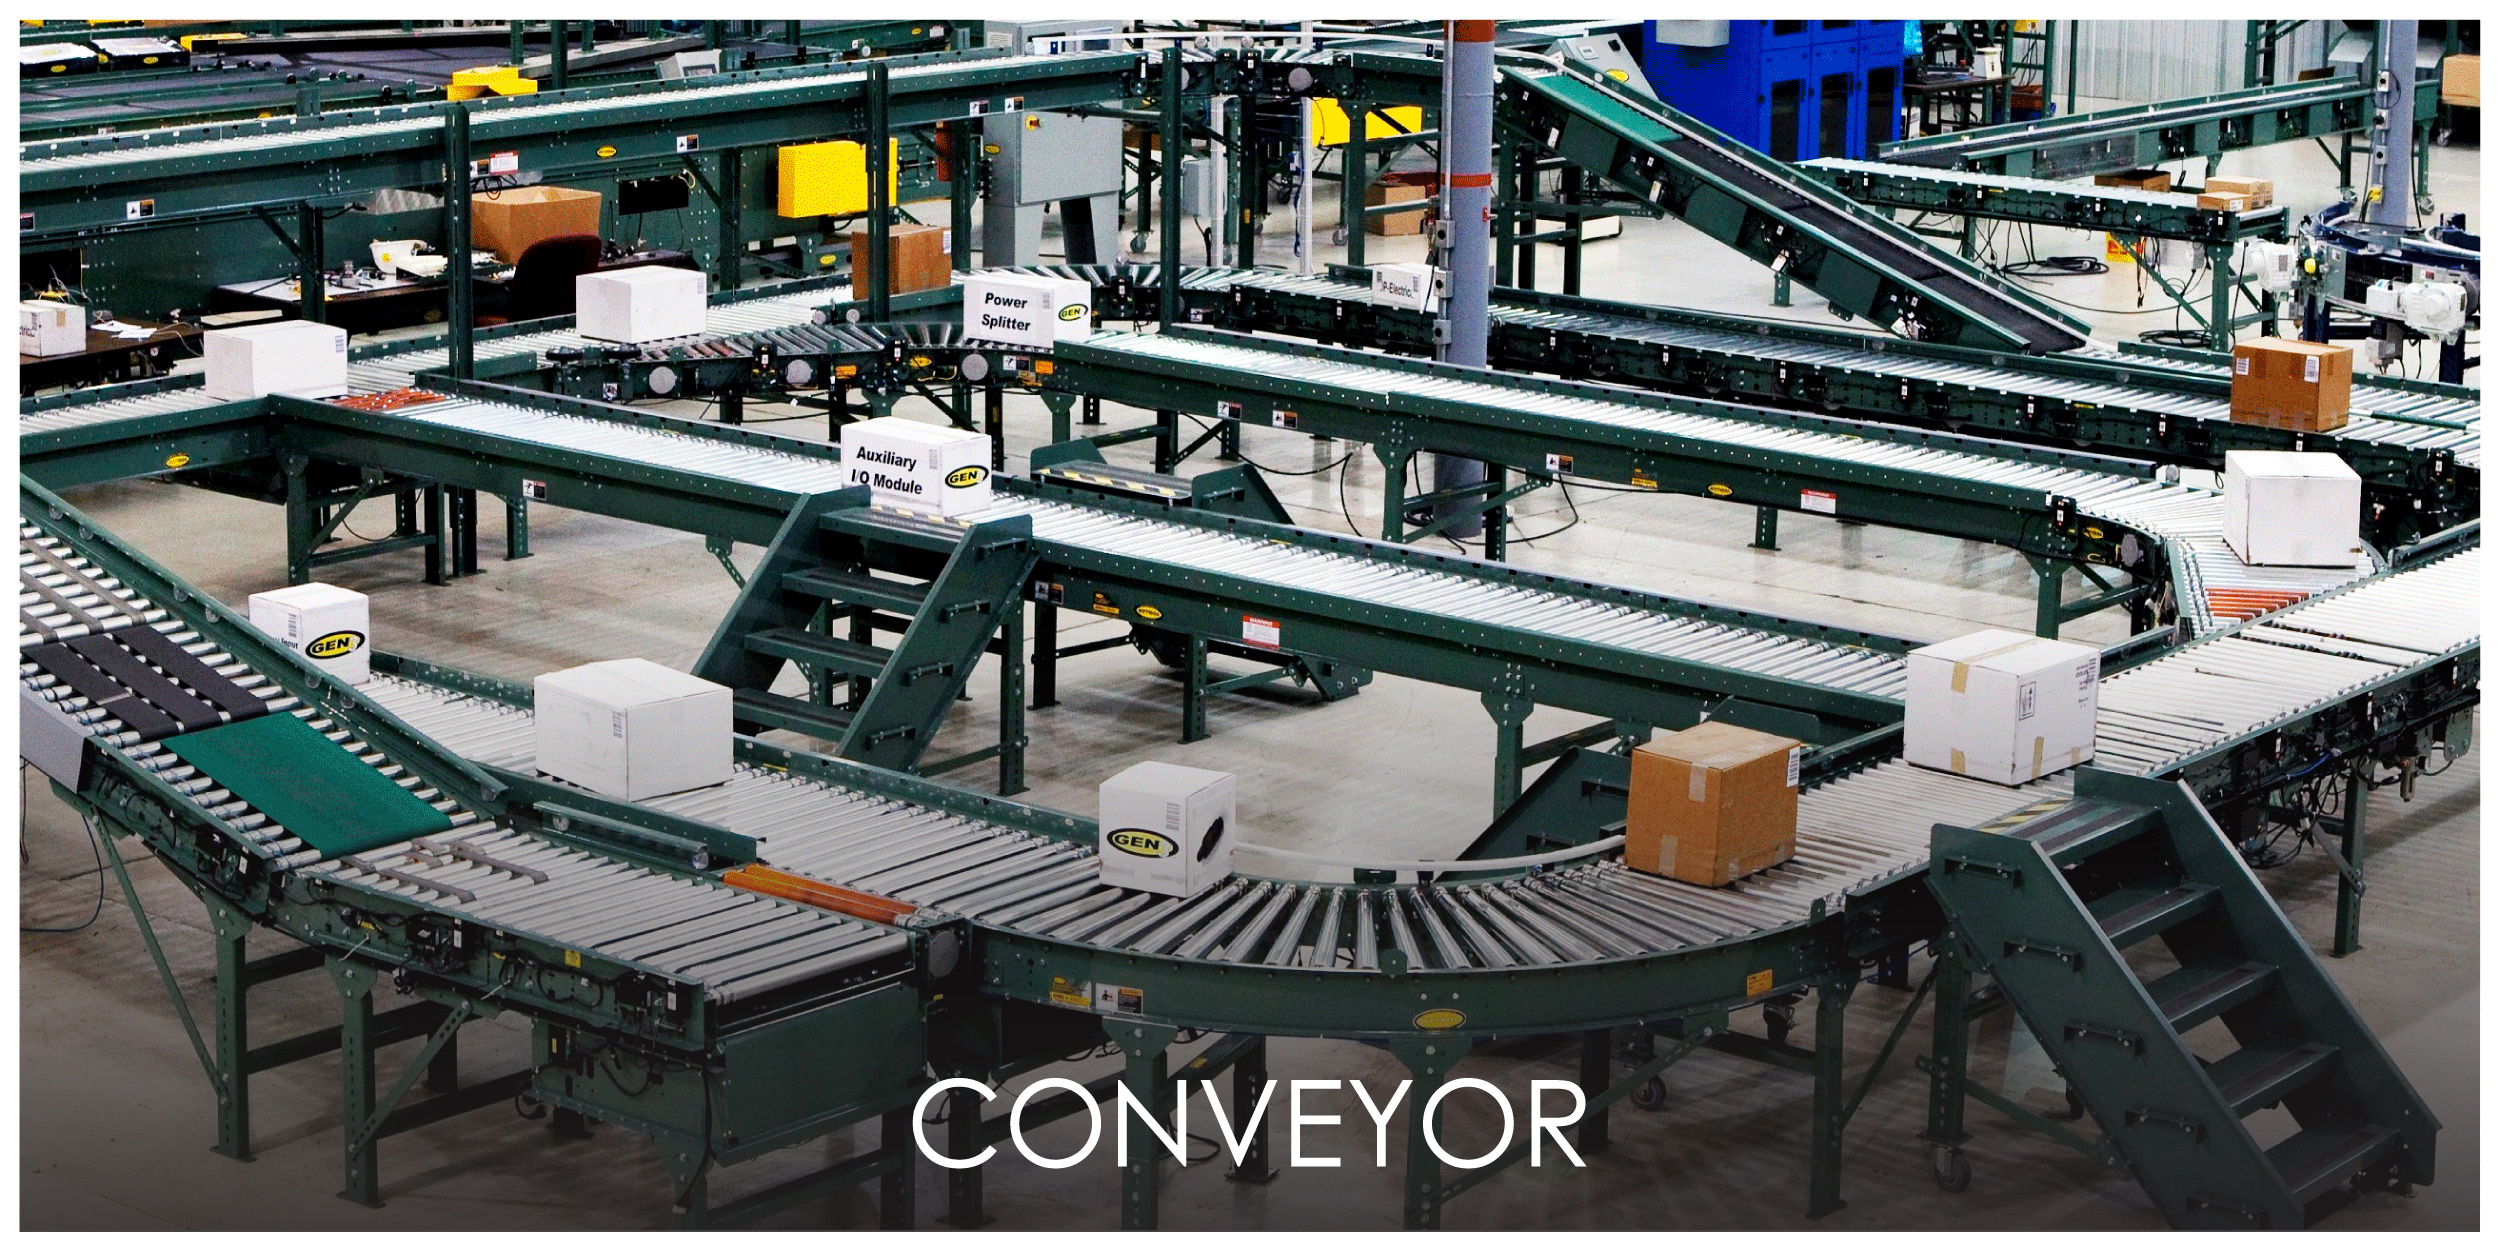 Conveyor-Front-Page.jpg